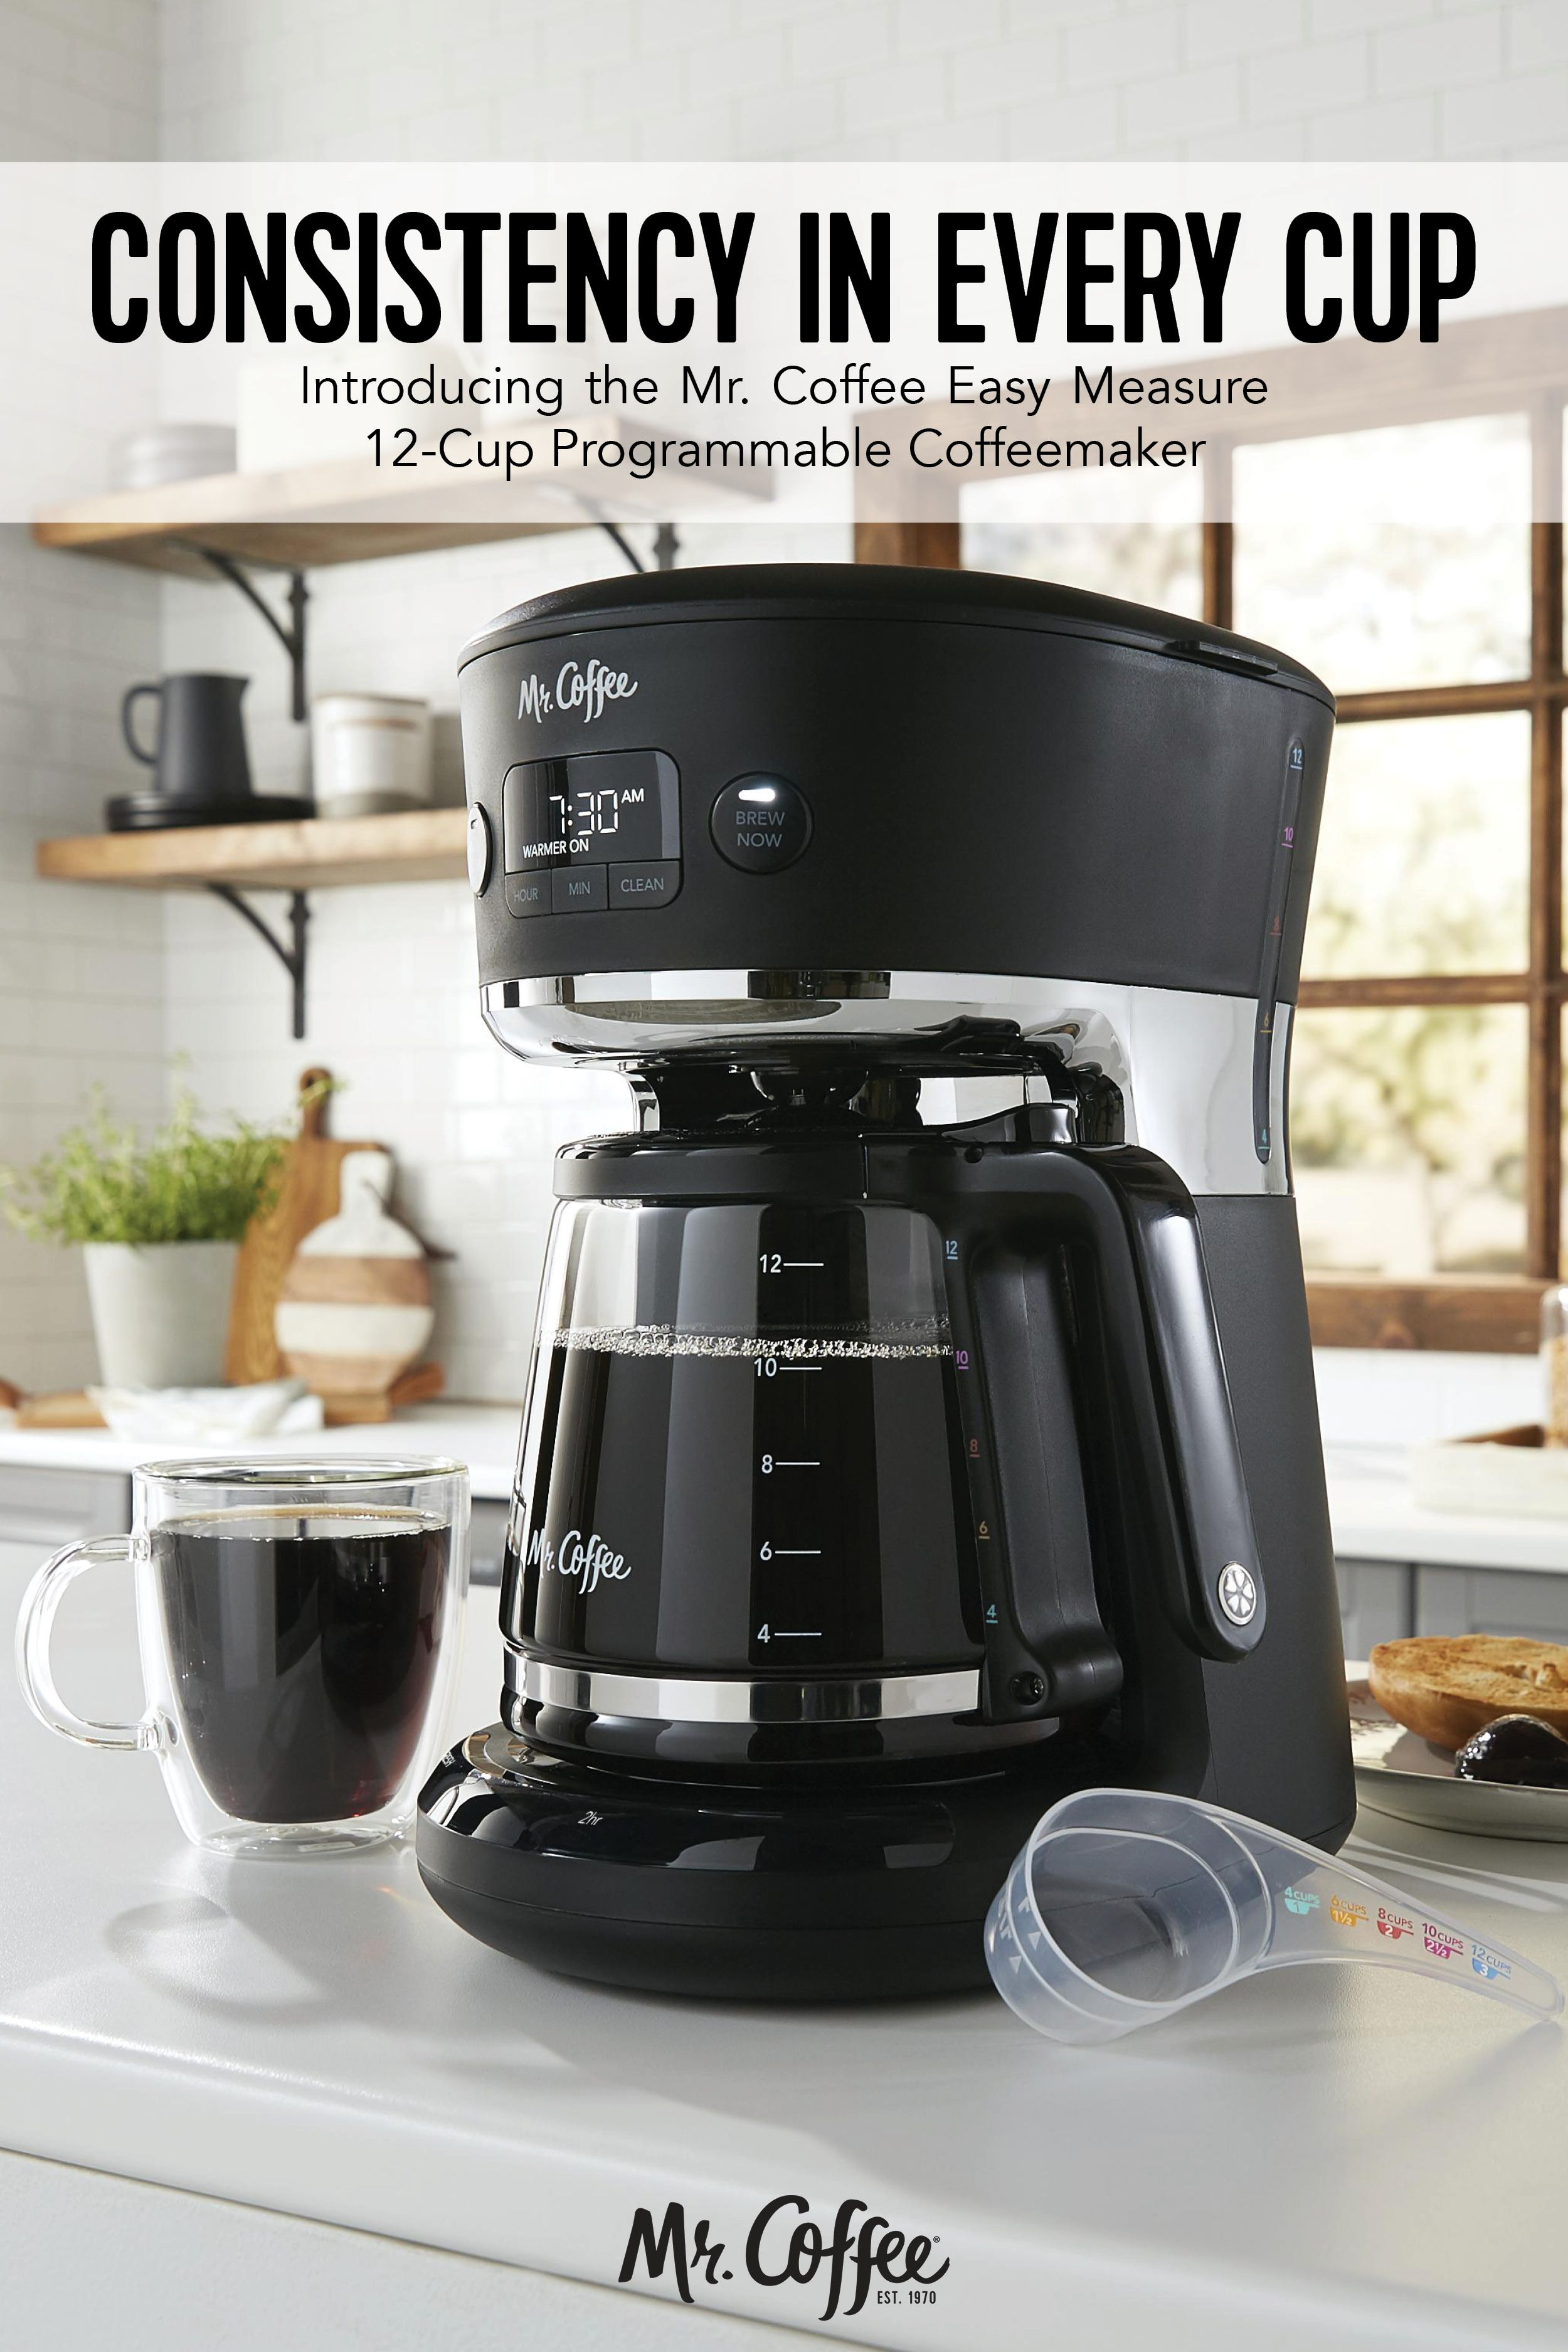 Camping coffee maker image by Mr. Coffee® Brand on Coffee